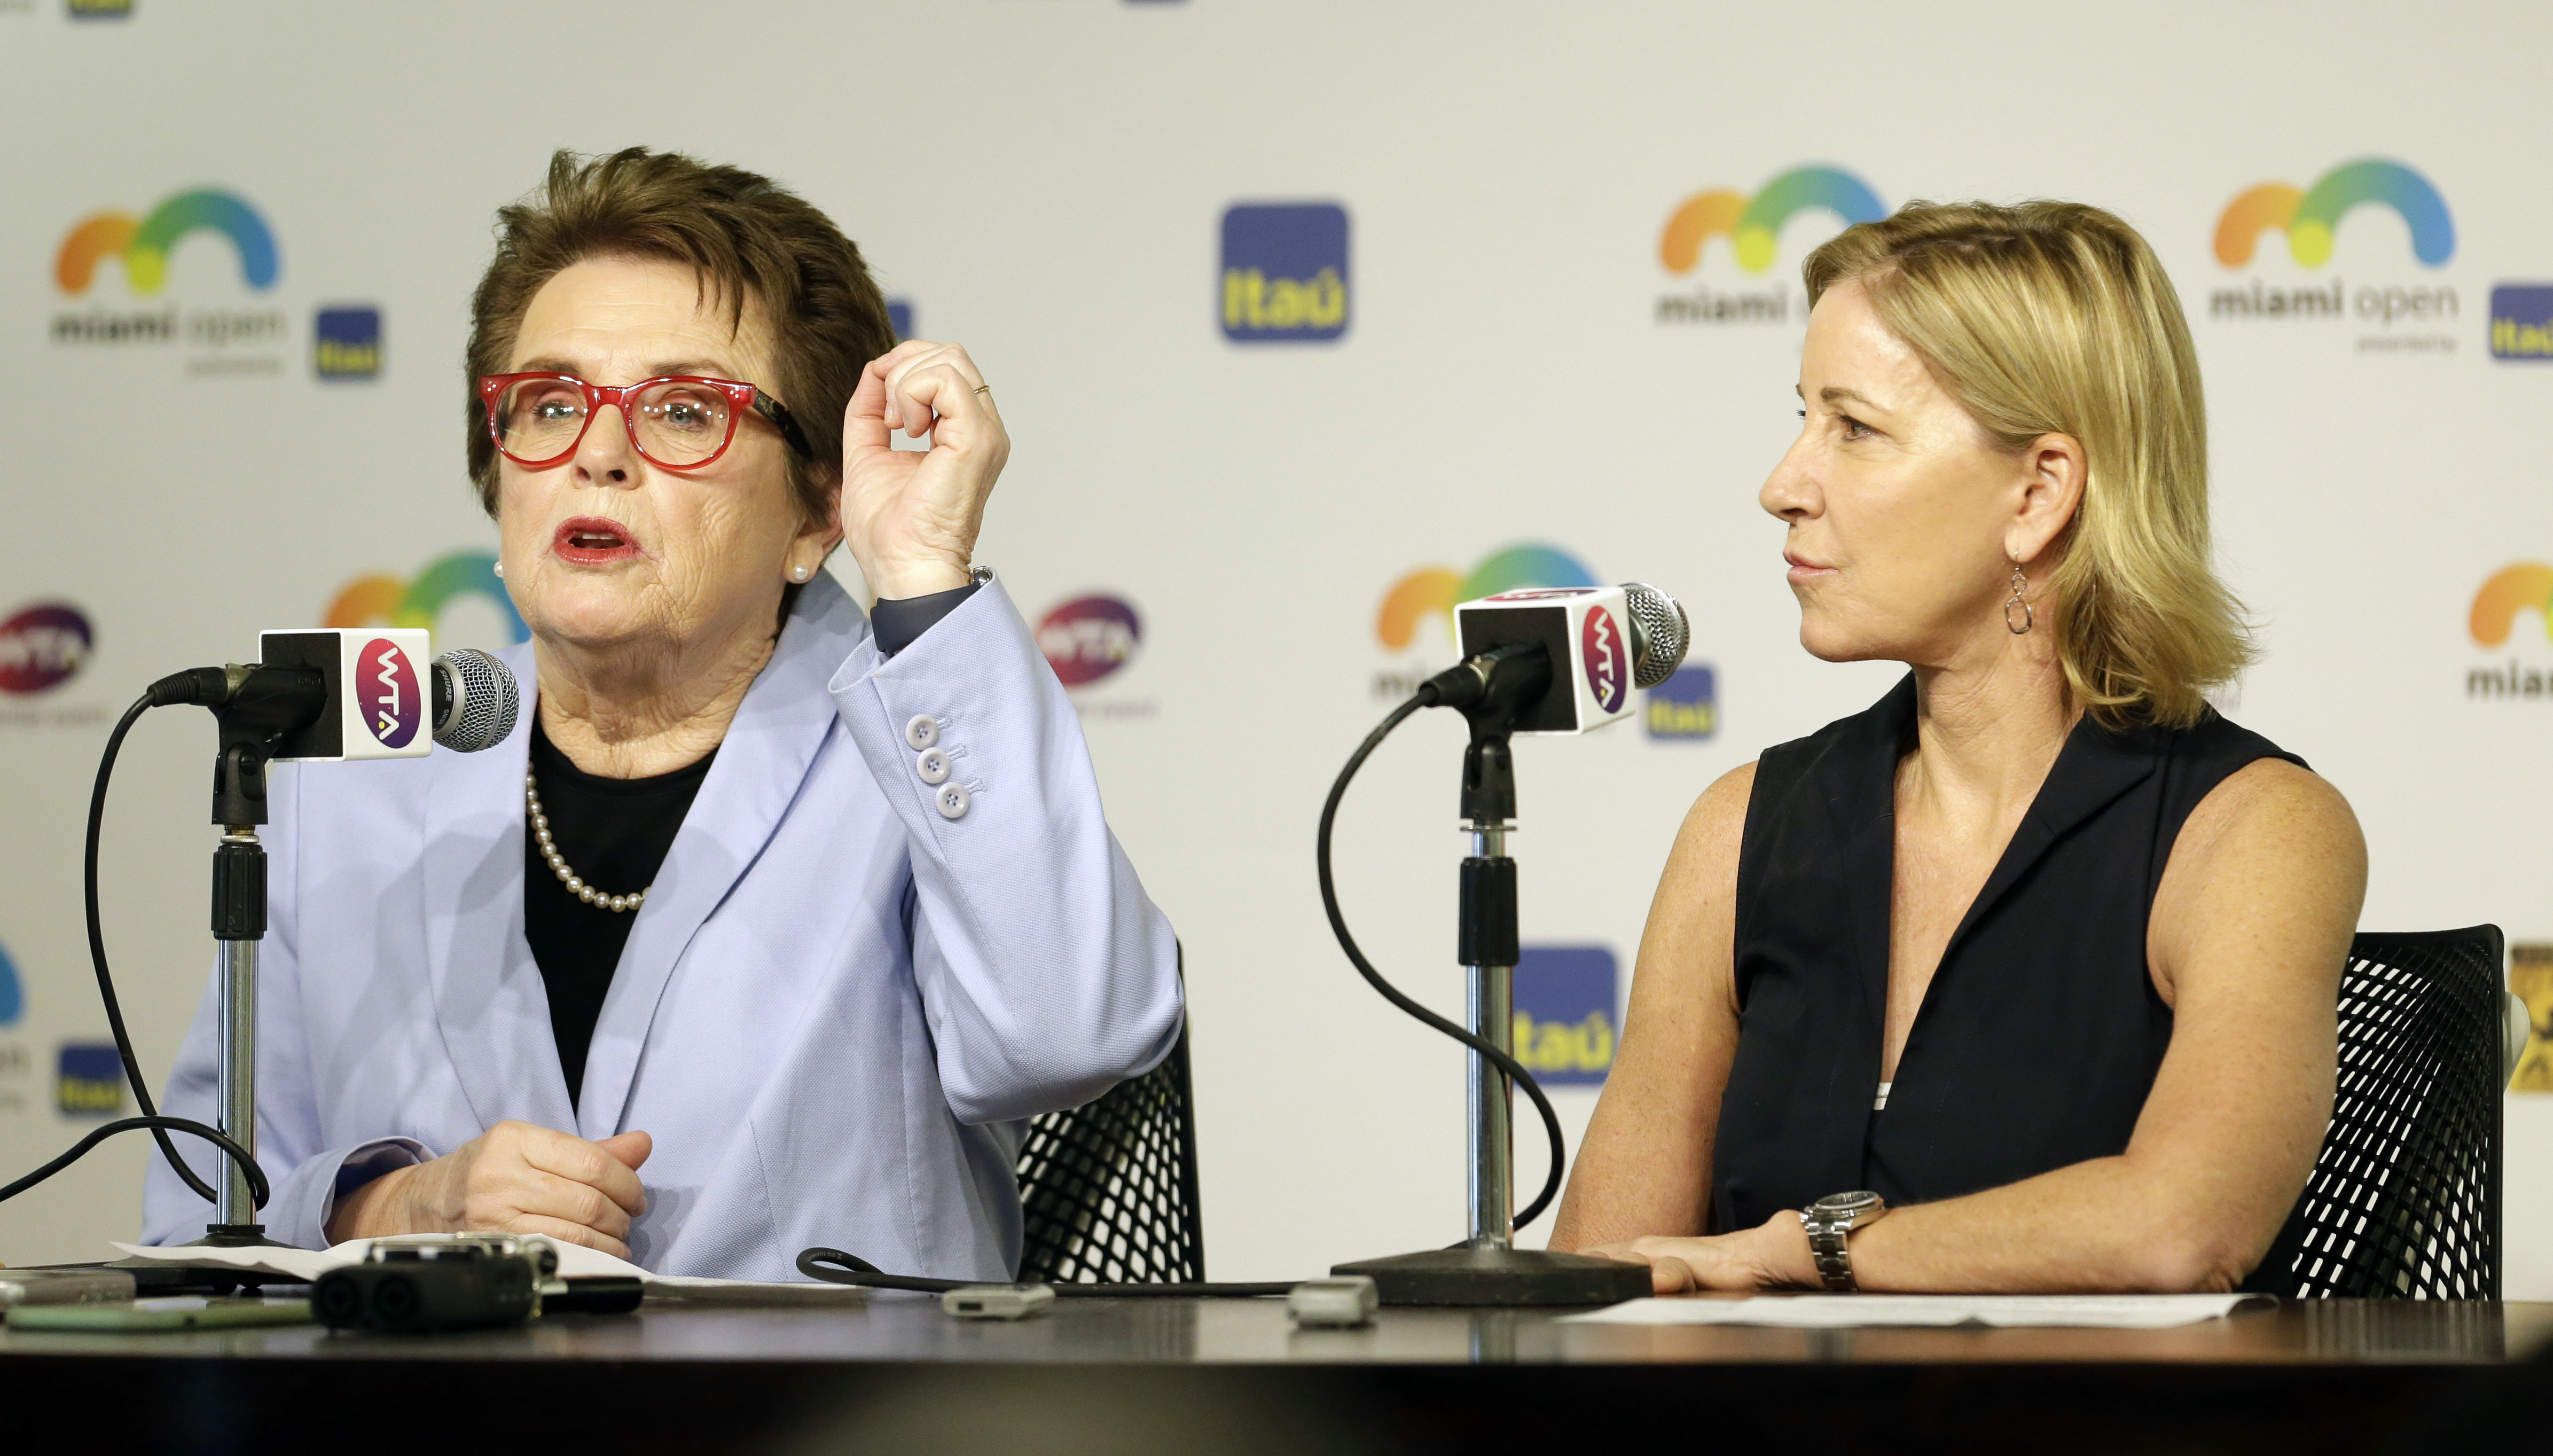 Billie Jean King, left, gestures as she talks to reporters as Chris Evert, right, looks on, at the Miami Open tennis match, in Key Biscayne, Fla., Wednesday, March 23, 2016. King and Evert talked about the resignation of the tournament director of the BNP